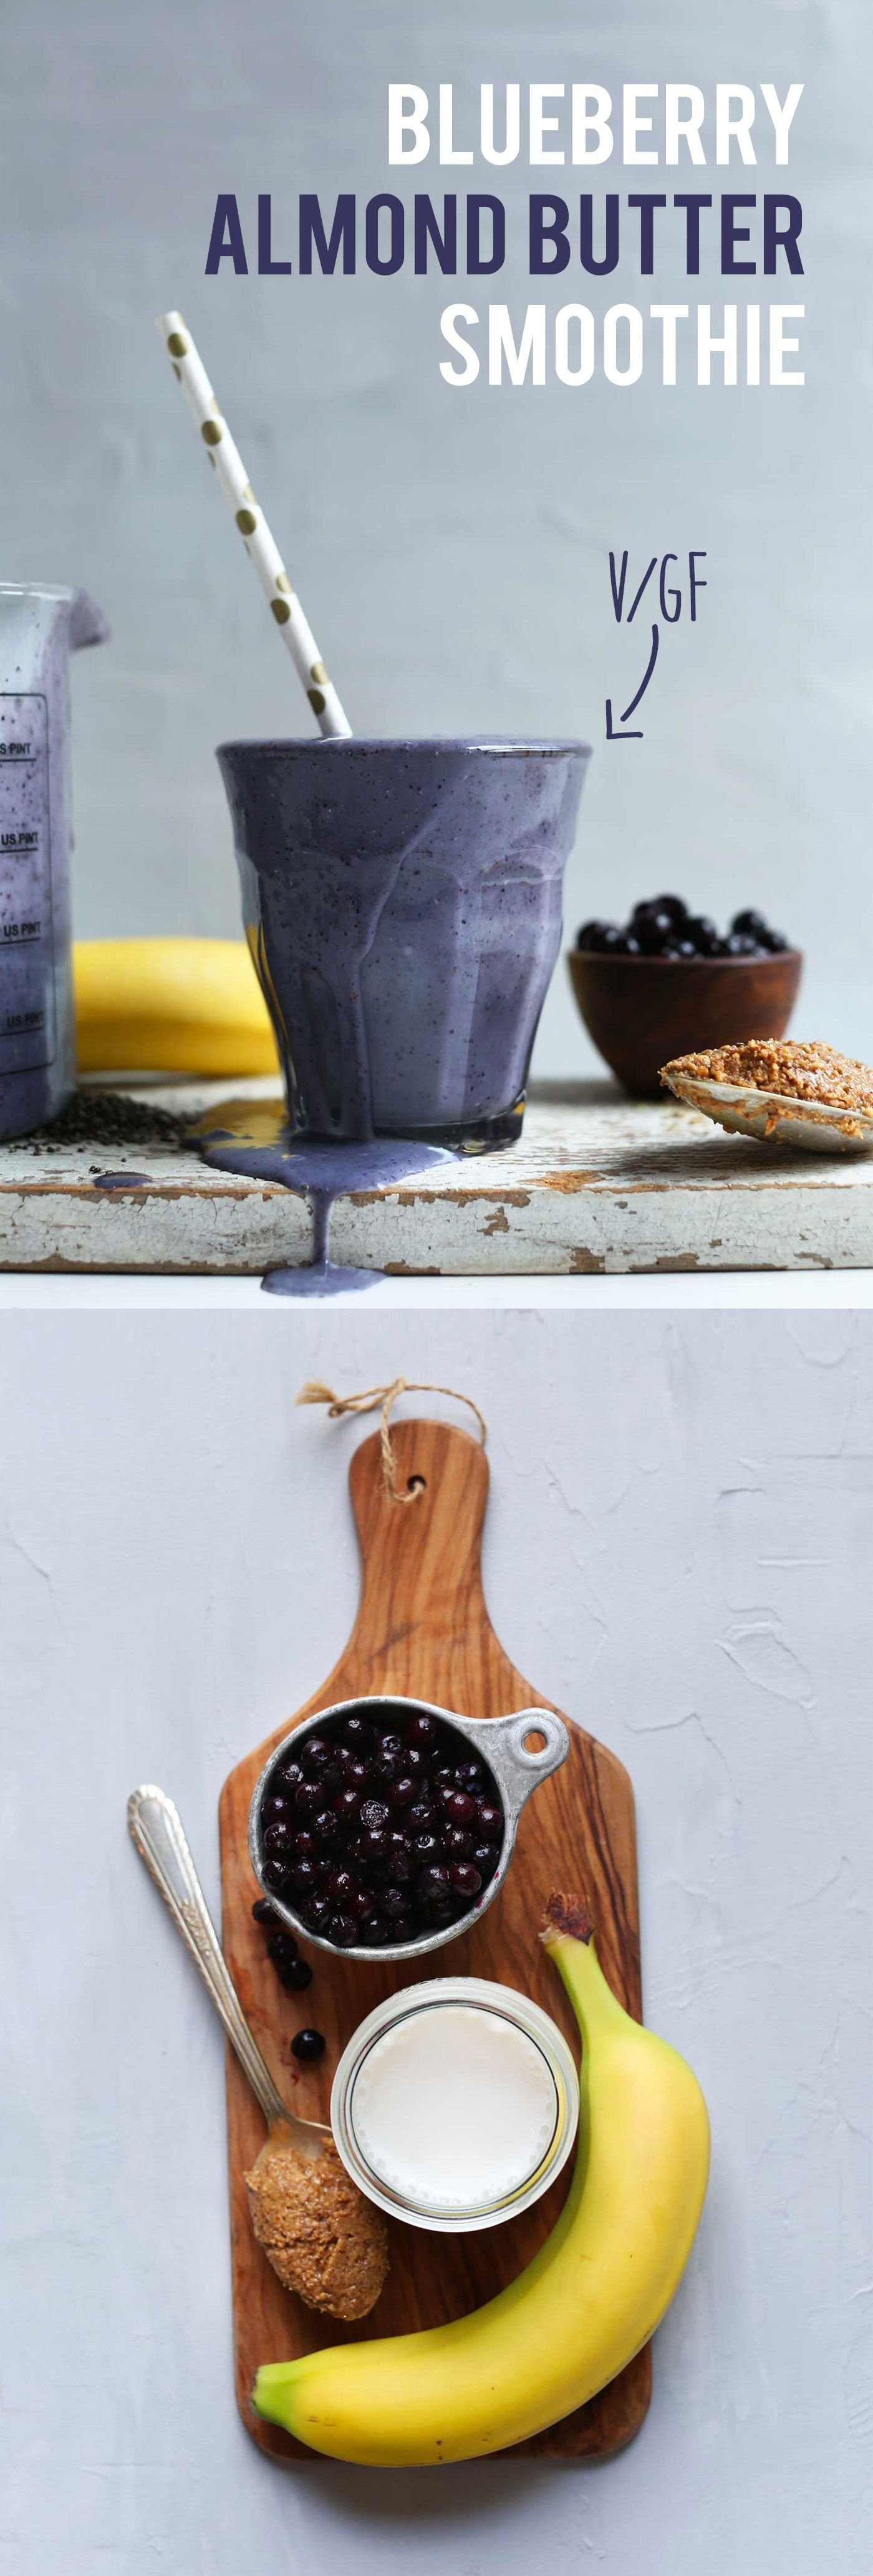 Blueberry Almond Butter Smoothie #flaxseedmealrecipes